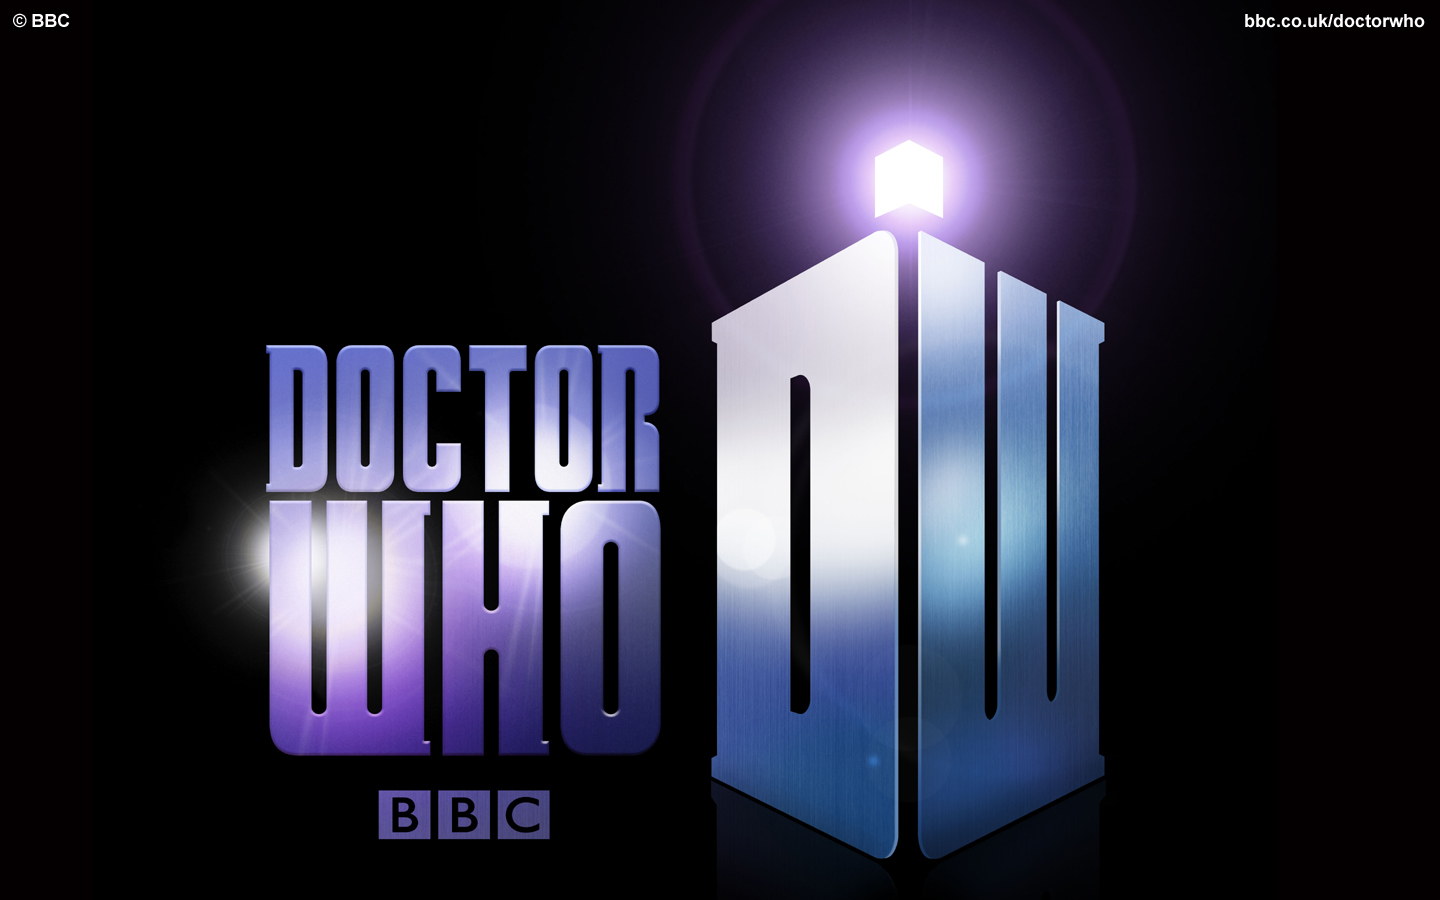 Introducing the Doctor Who logo 2010